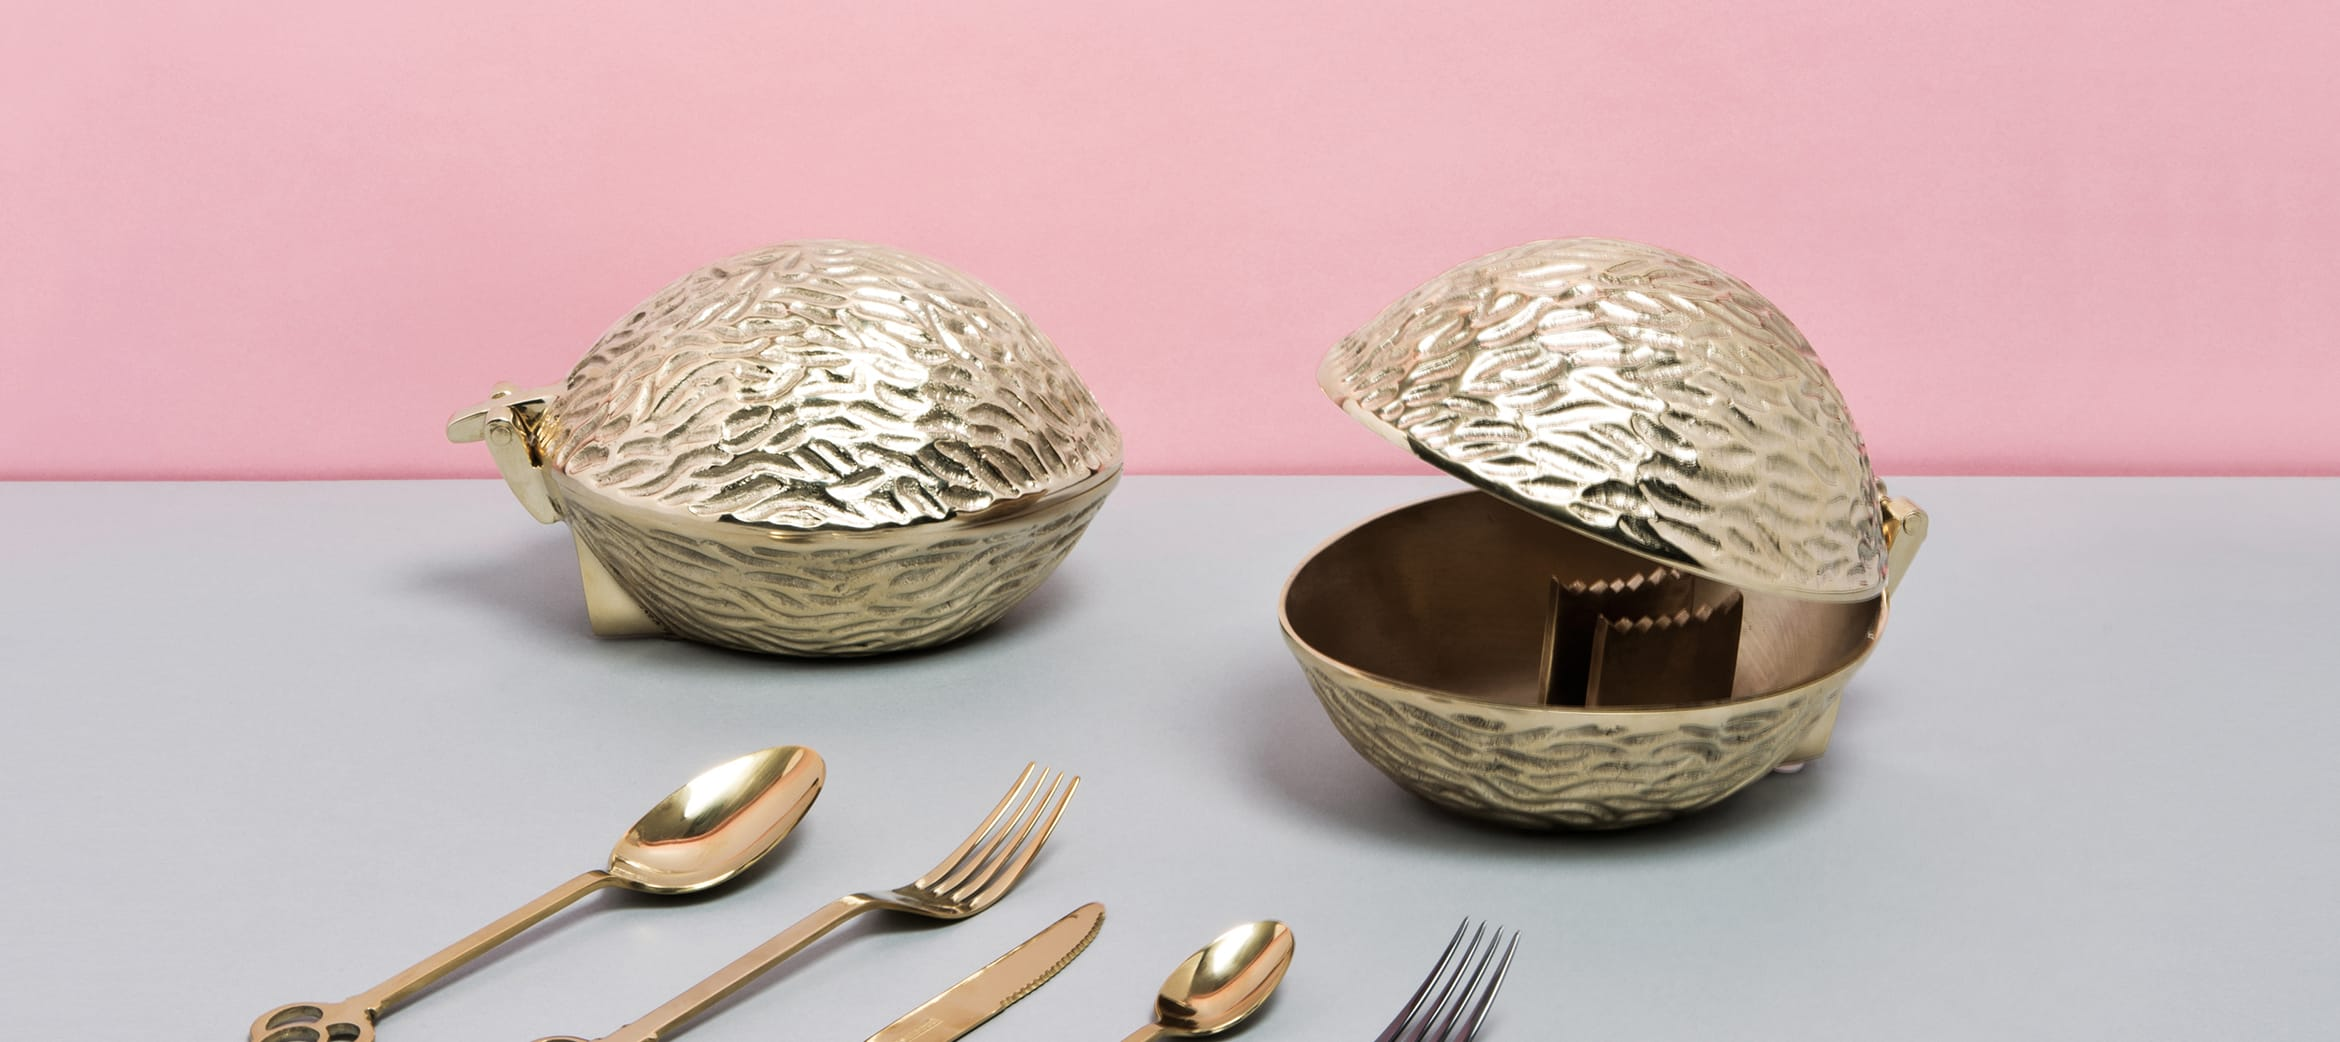 The incredible solid brass Noix nut-cracker by Seletti